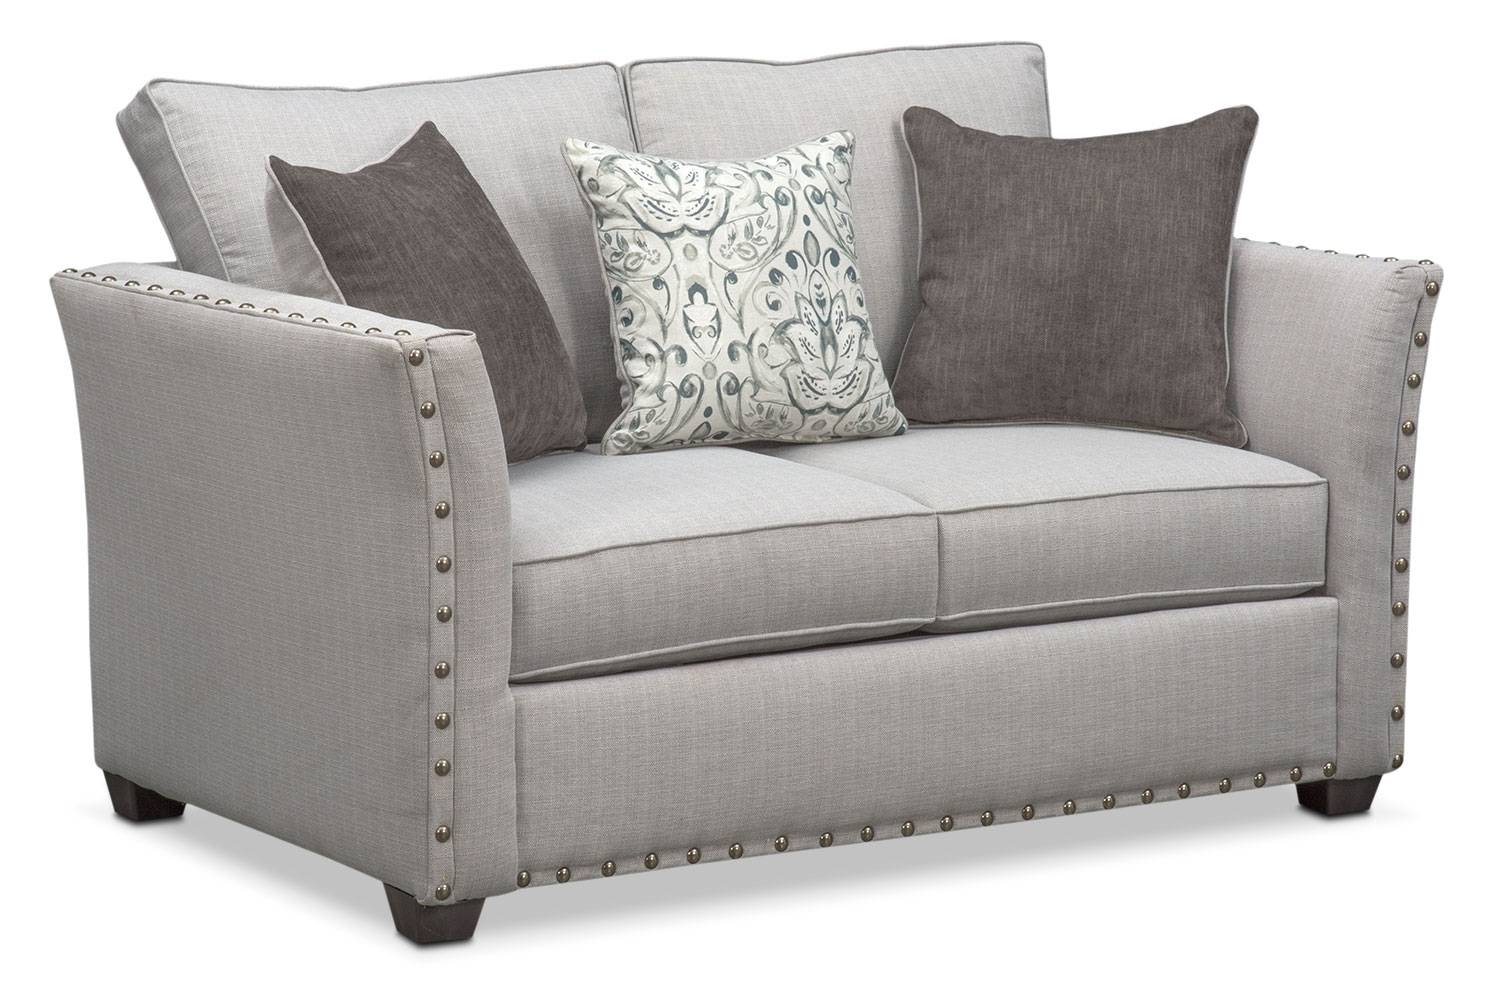 Mckenna Sofa, Loveseat And Accent Chair Set - Pewter | Value City regarding Sofa Loveseat And Chair Set (Image 18 of 30)